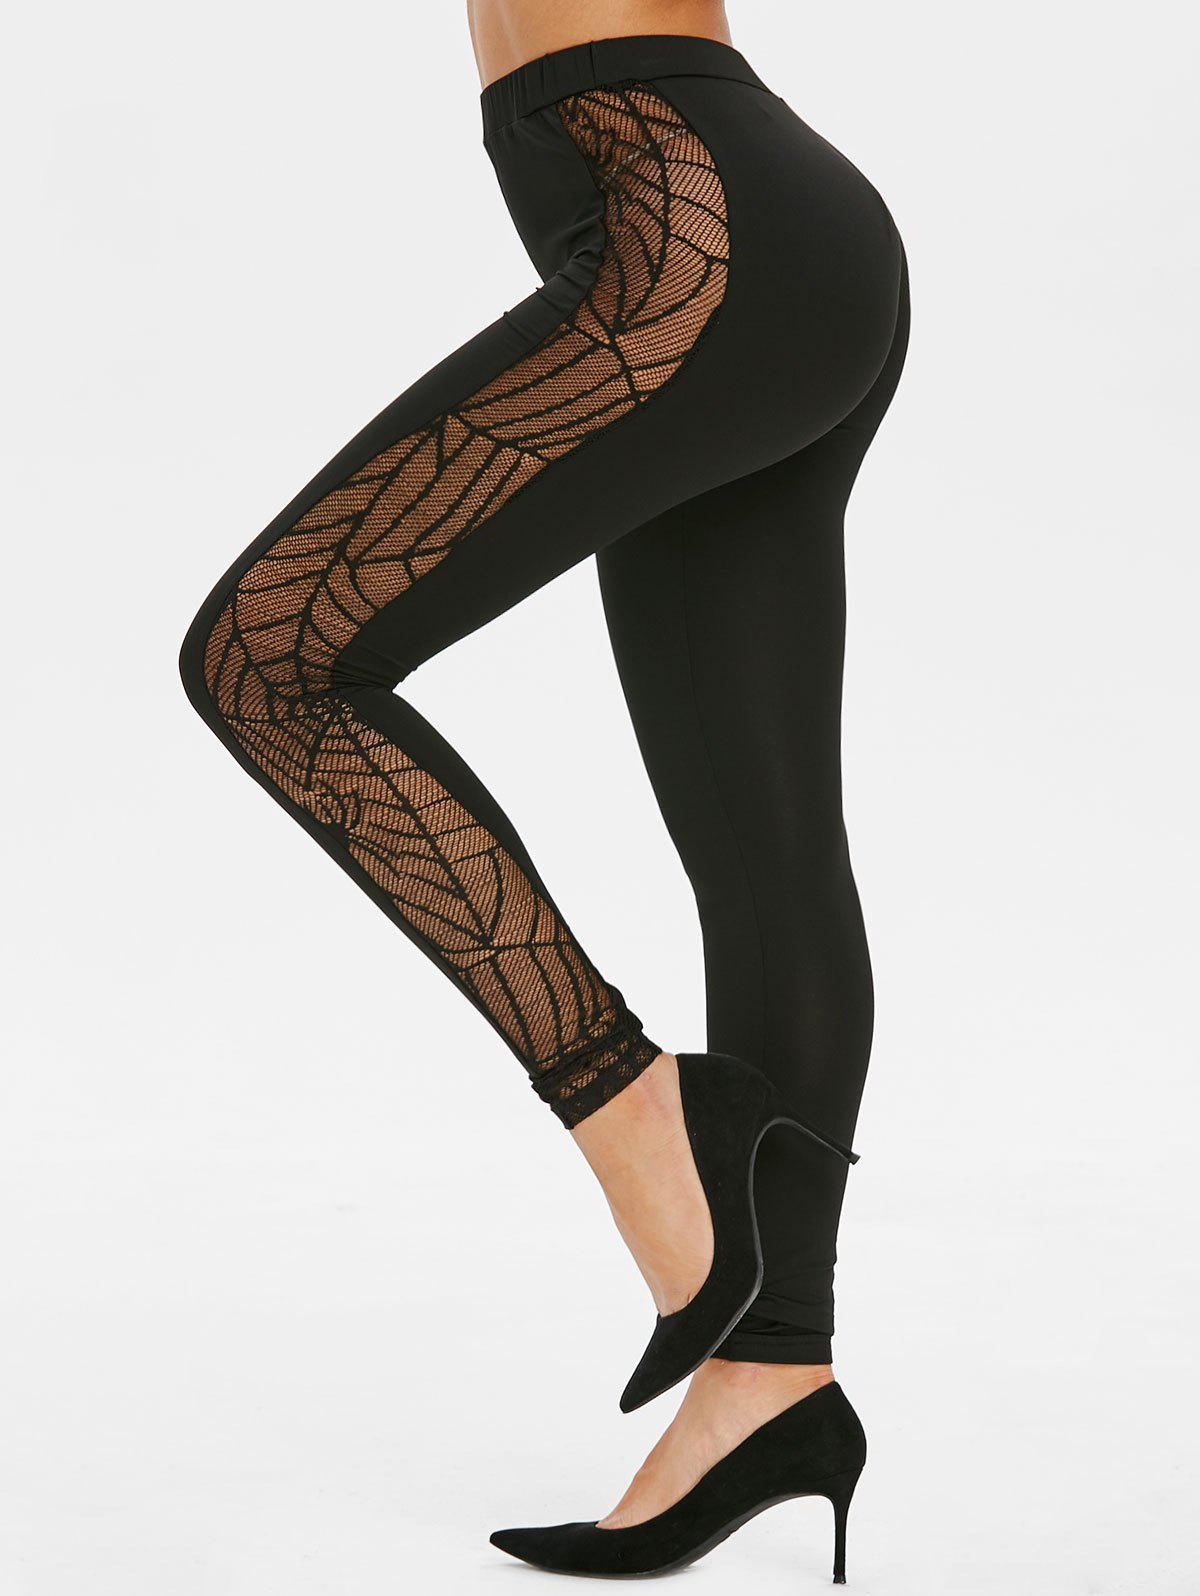 New Sheer Spider Web Lace Gothic Skinny Leggings